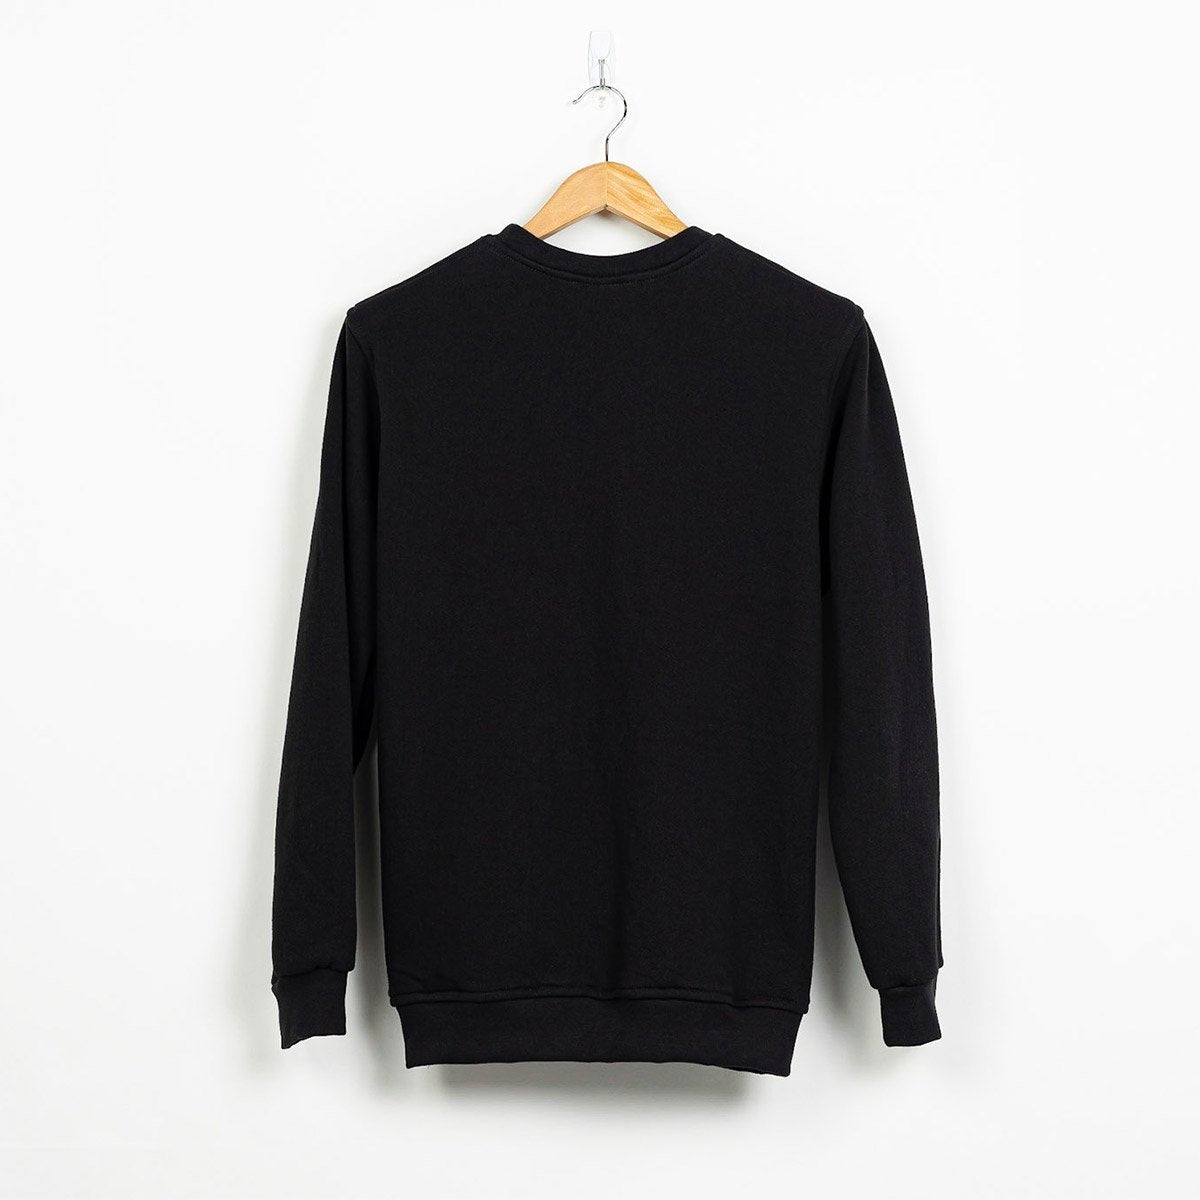 Collegiate Sweatshirt - Black